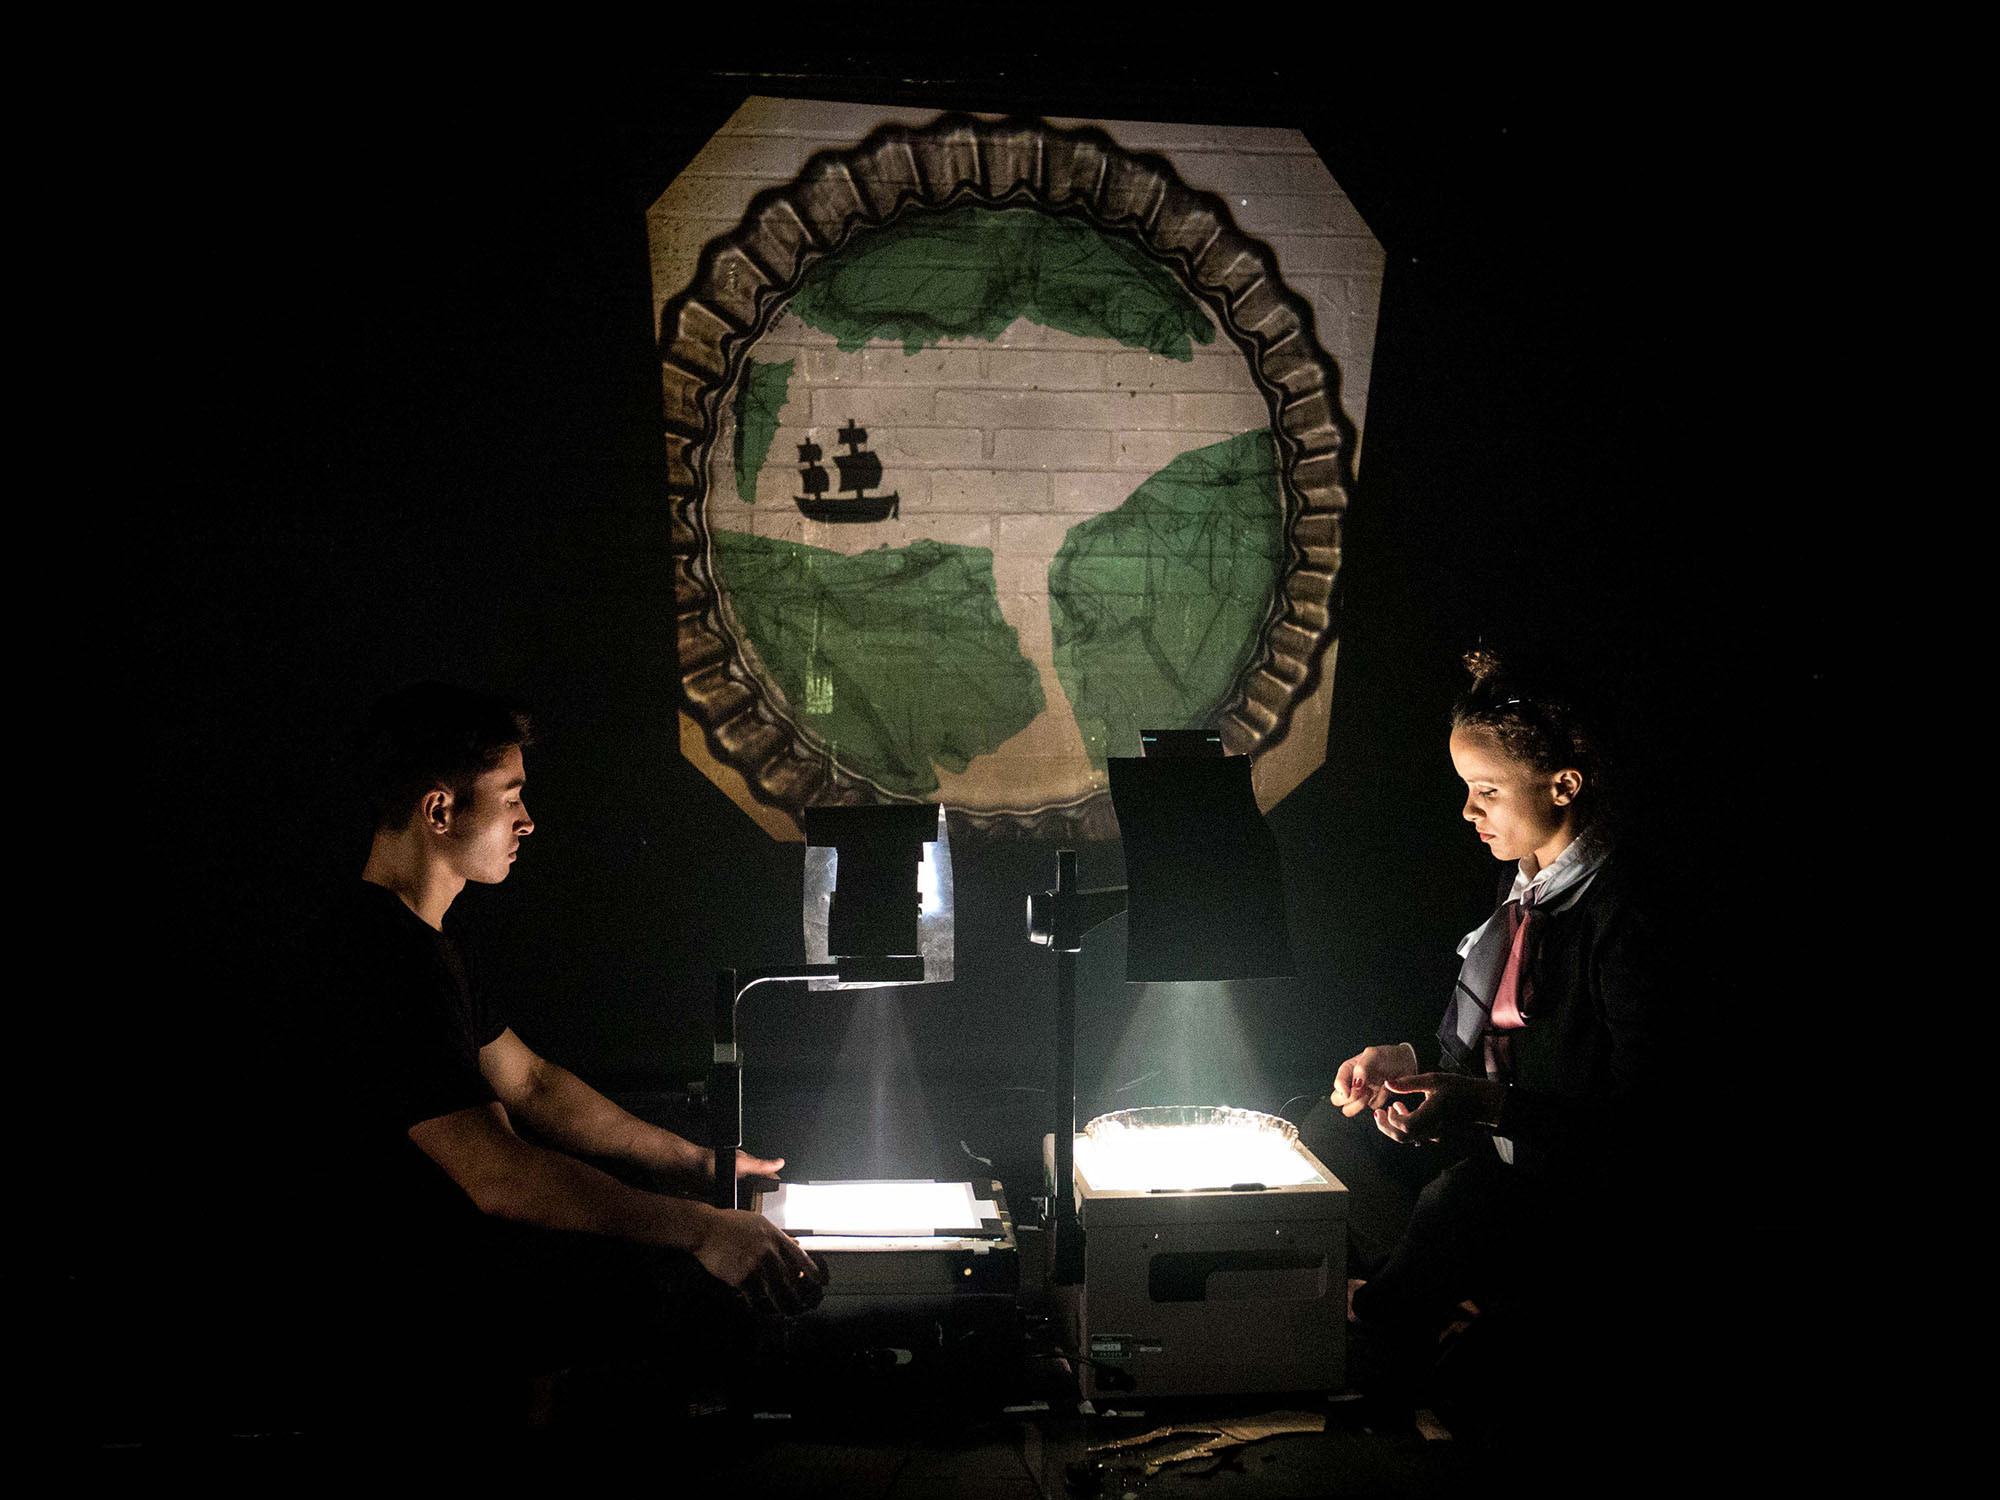 Two performers dressed in black crouch in the dark by two overhead projectors. These project a handmade image of a map of land and ocean with a ship sailing on it